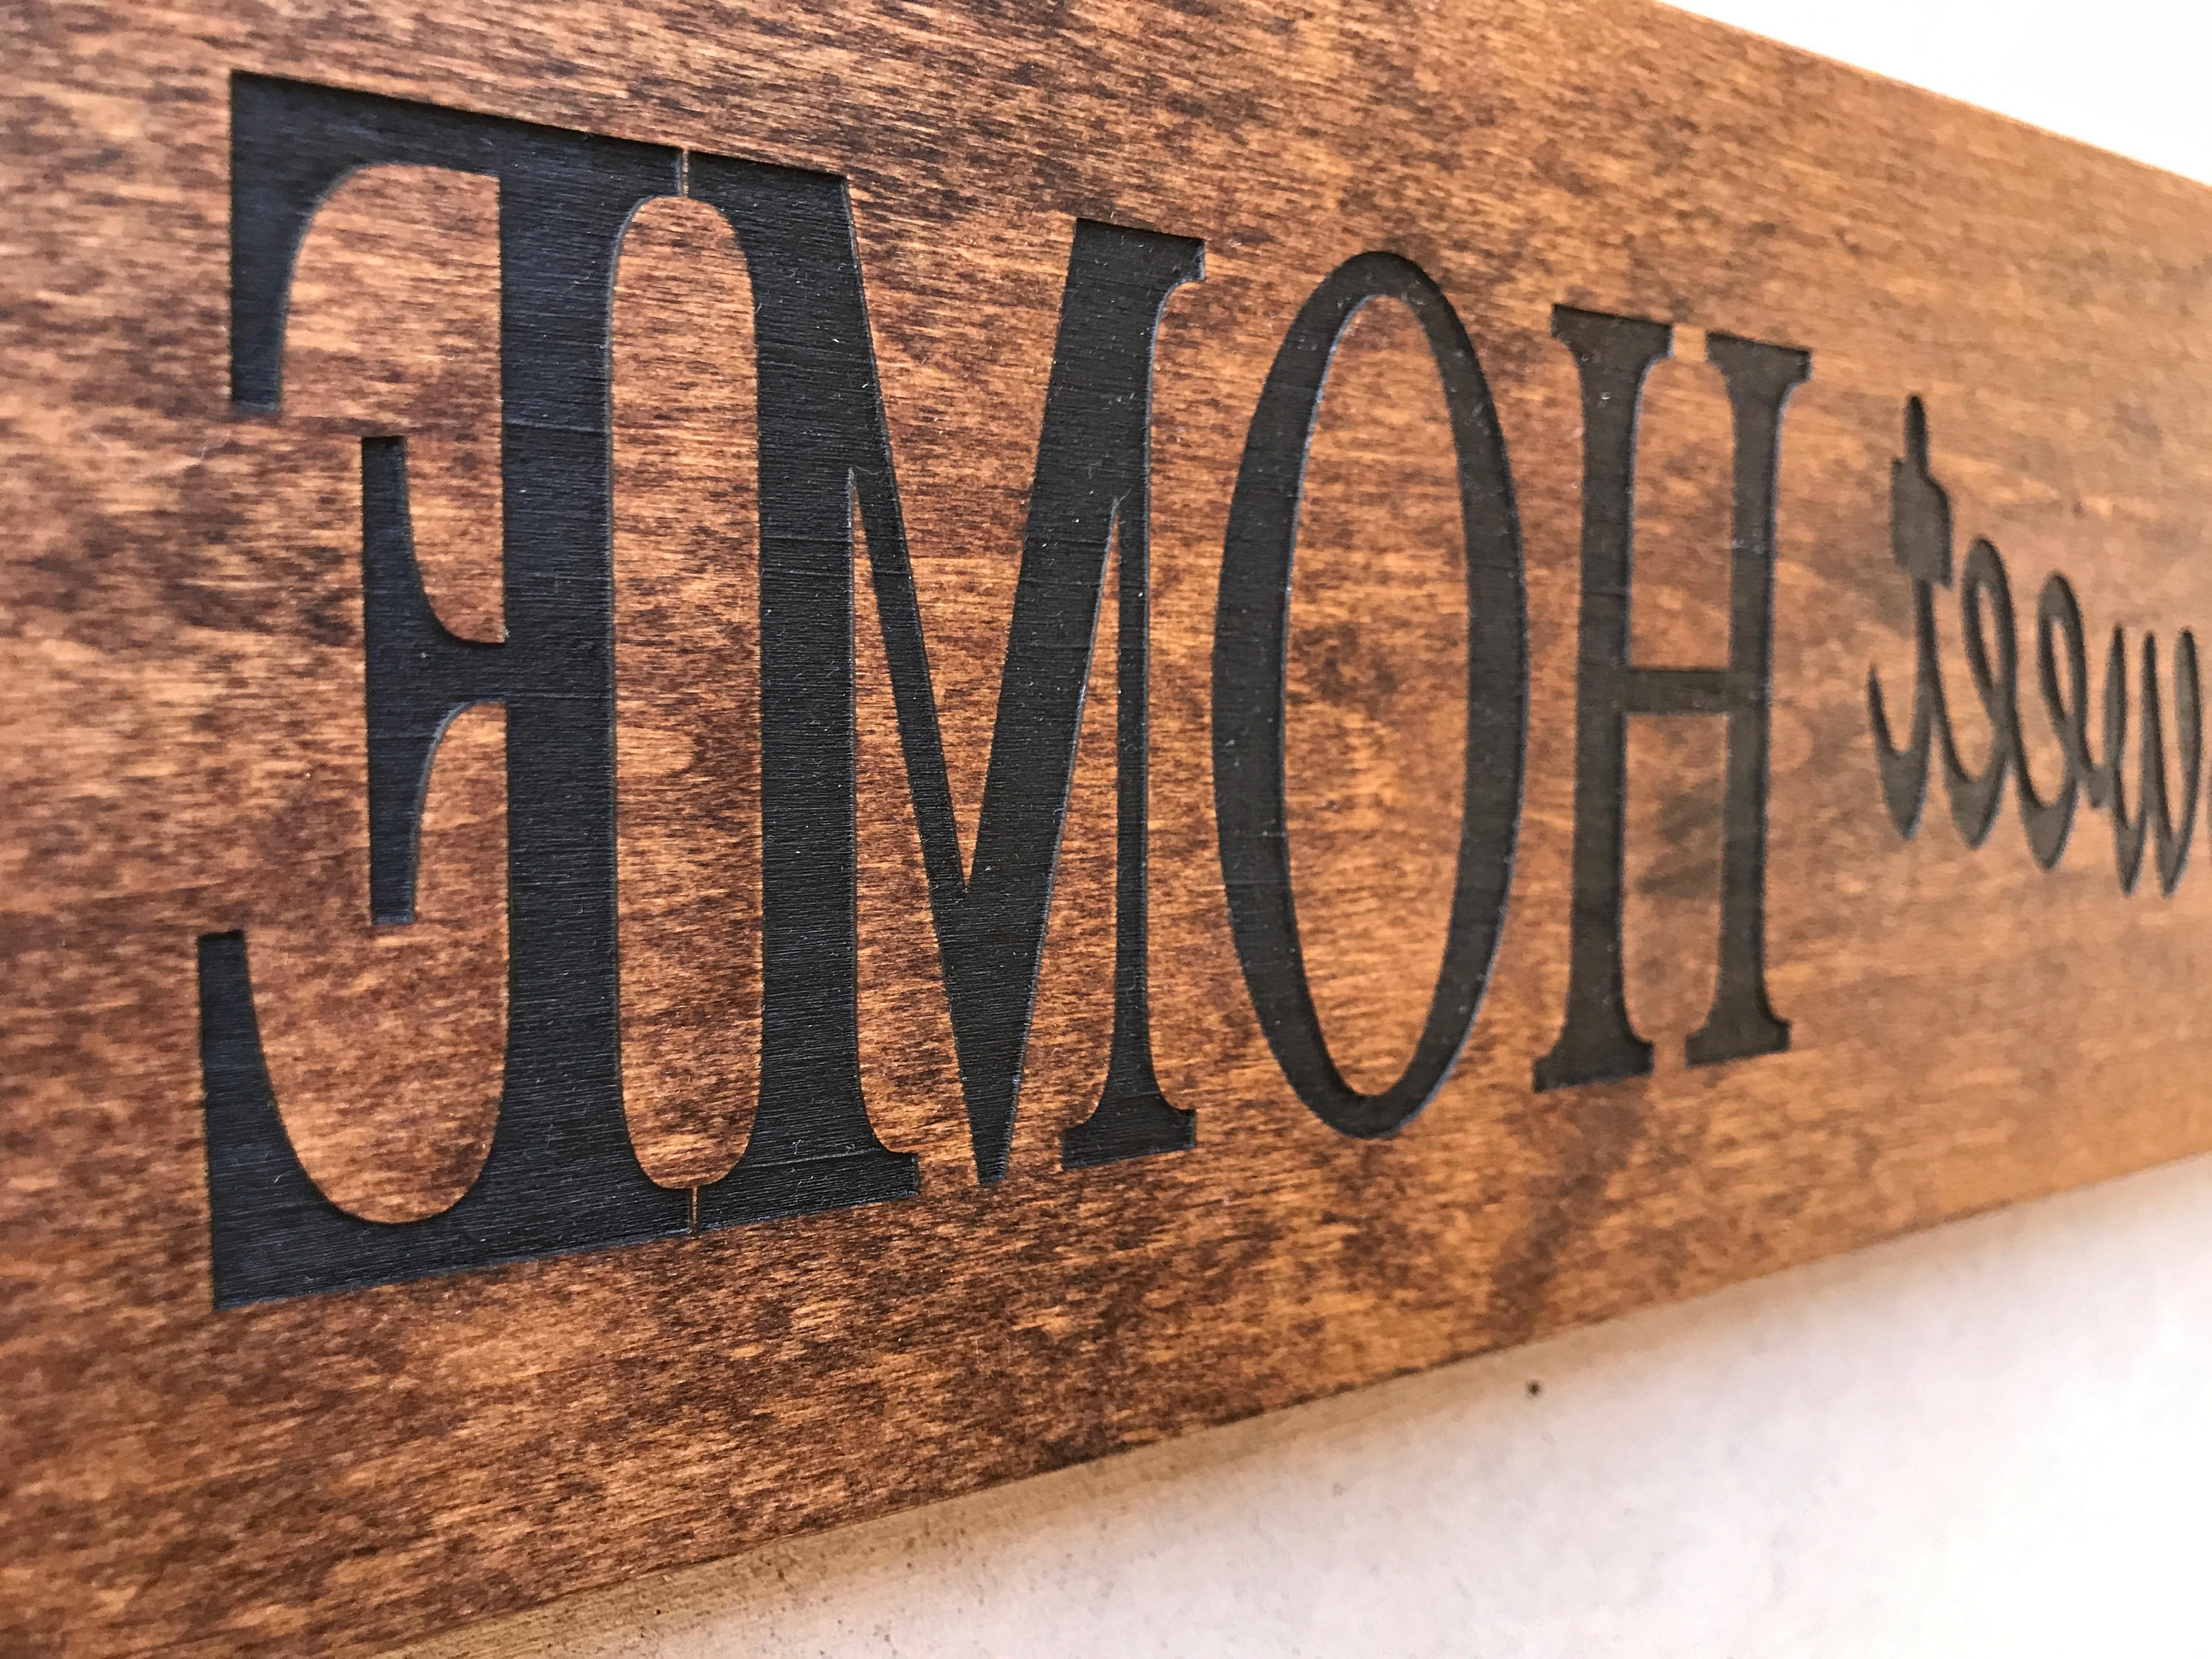 Engraved Wood Home Sign / Inspirational Sign / Custom Wall Decor Within Preferred Laser Engraved Home Sweet Home Wall Decor (Gallery 13 of 20)